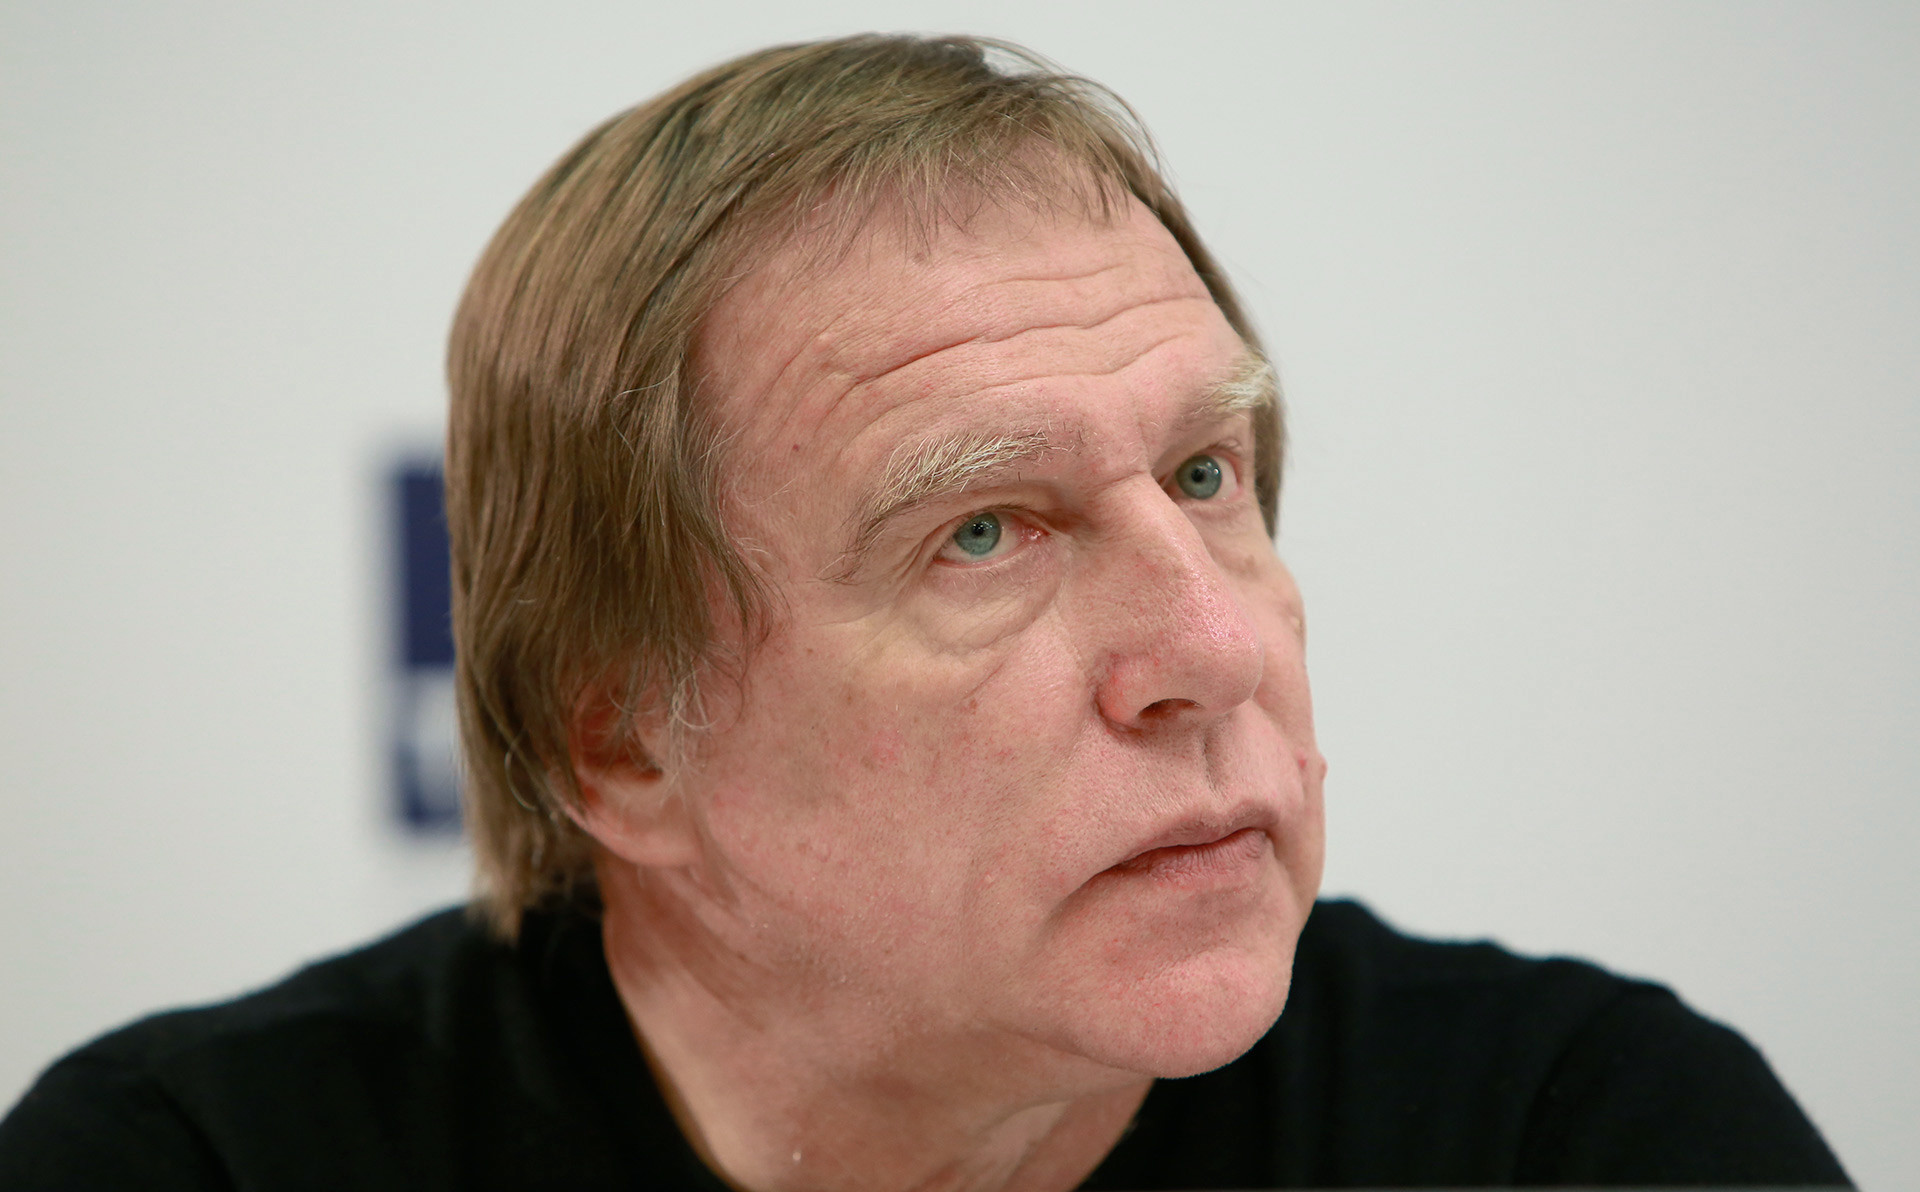 Sergei Roldugin, artistic director of the St. Petersburg House of Music